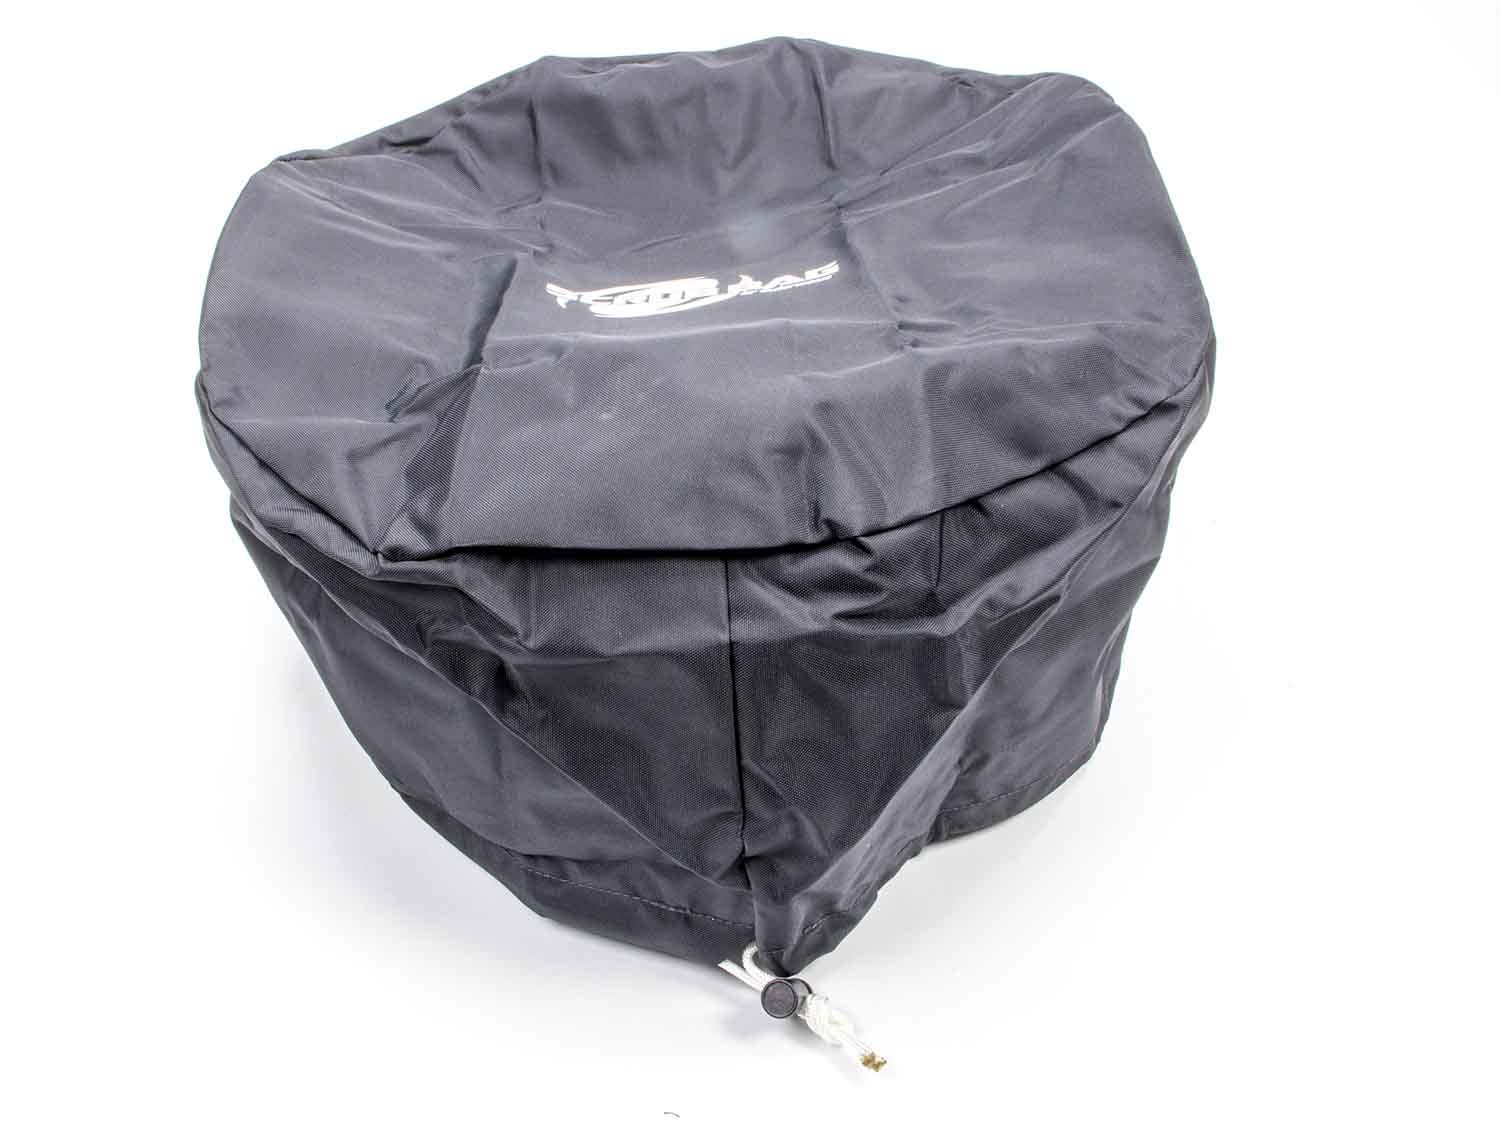 Outerwears 30-2658-01 Scrub Bag, 15 in OD, 6 in Tall, Polyester, Black, R2C 4-6 in Tall Air Filters, Each